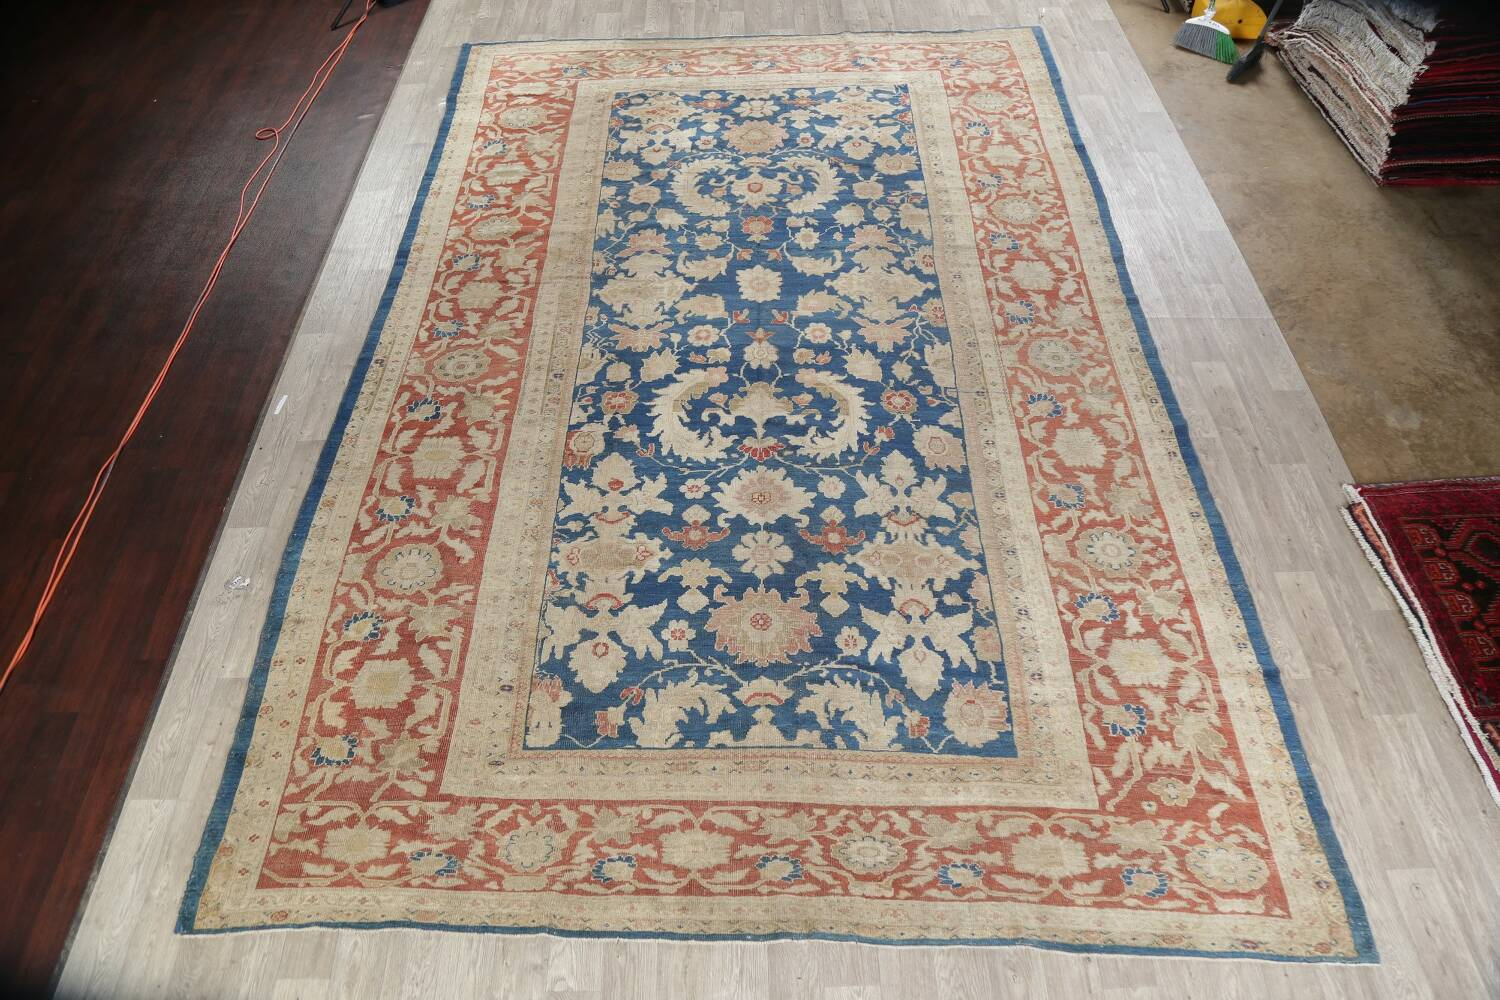 Antique Floral Sultanabad Persian Area Rug 10x16 Large image 1